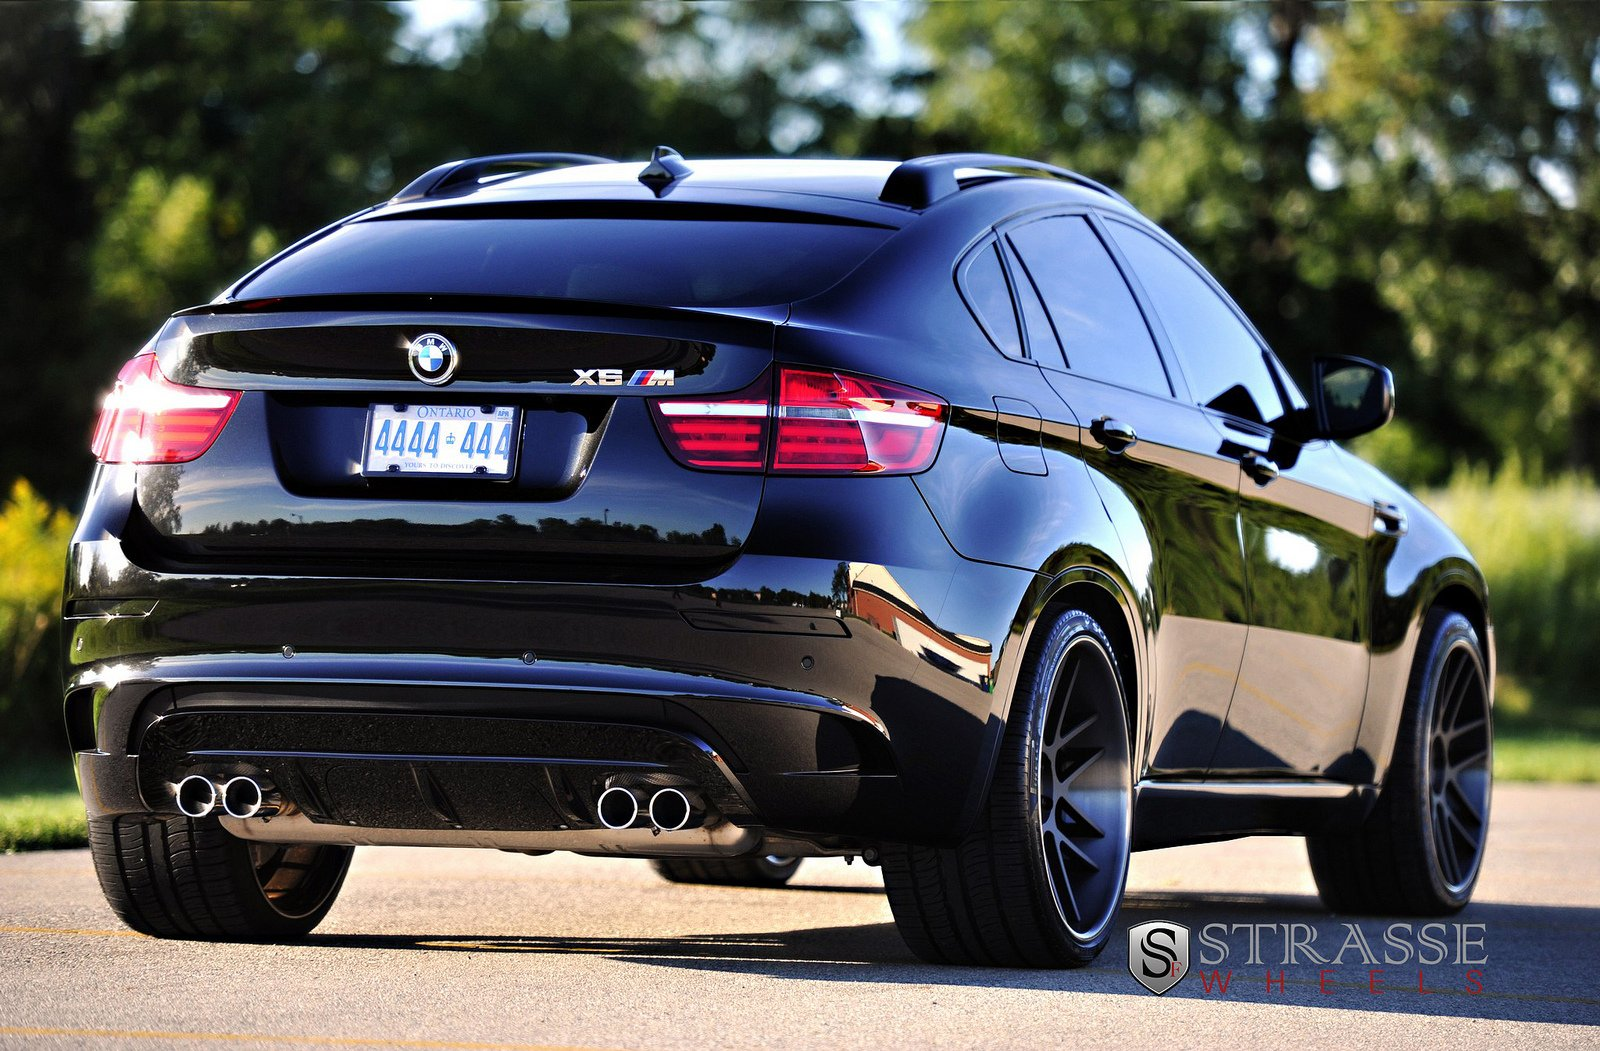 Bmw X6 M Black Suv Strasse Wheels Tuning Cars Wallpaper 1600x1051 393306 Wallpaperup